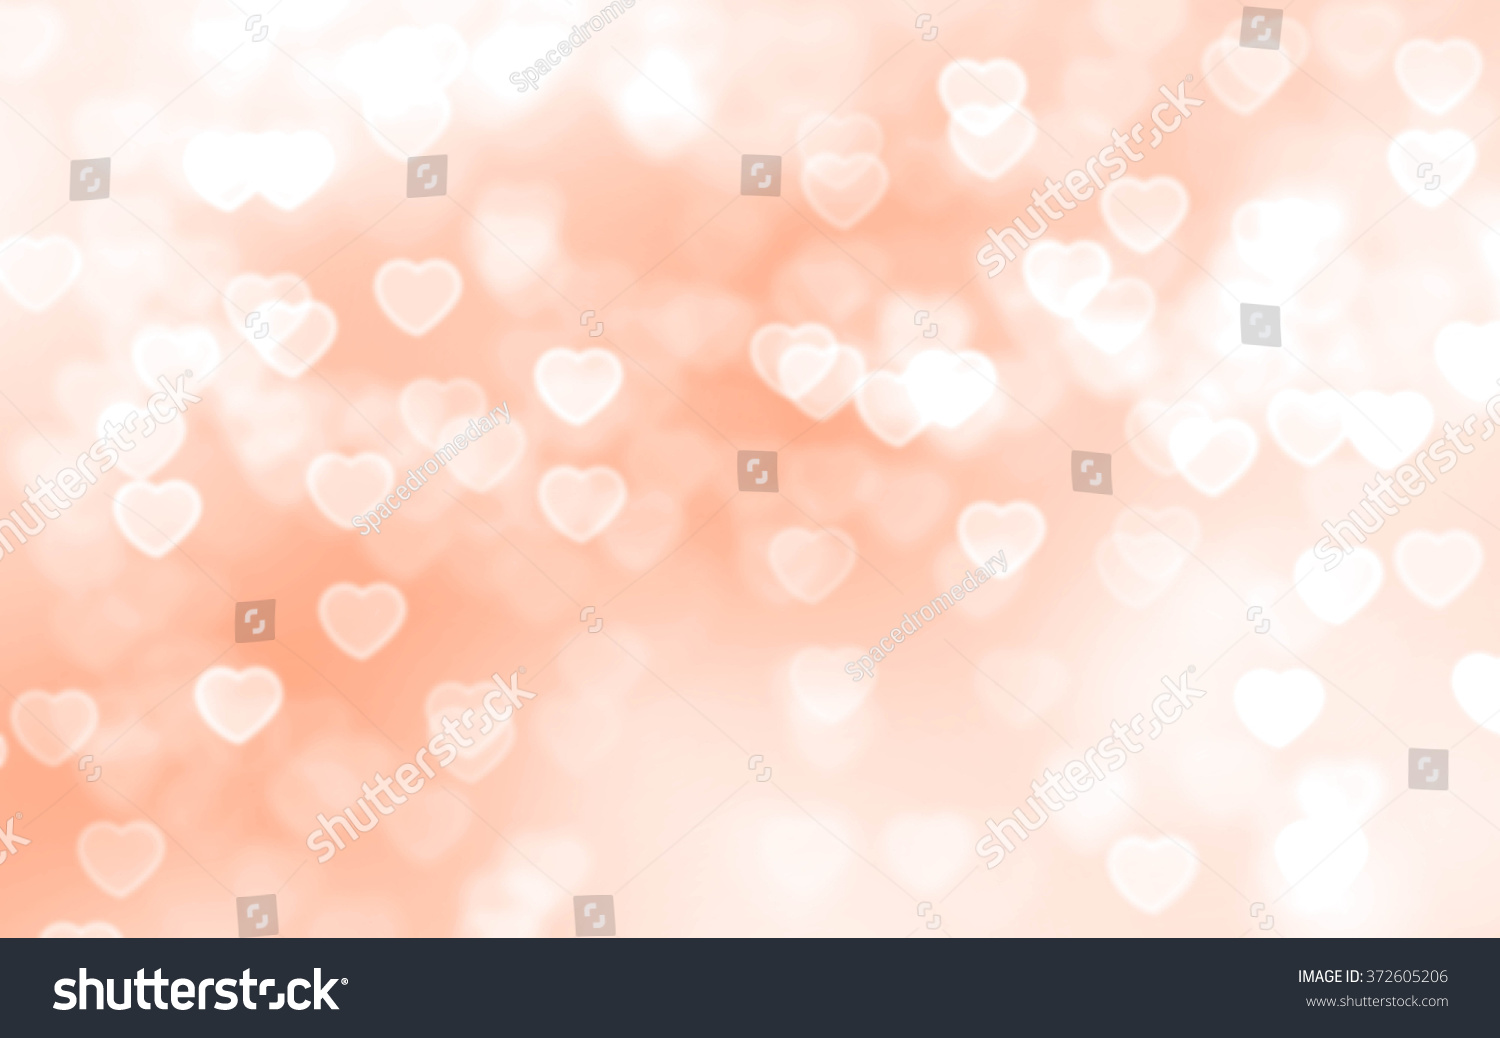 Bokeh Heart Shape Of Light Background Stock Footage Video: Bright Peach Color Heartshaped Bokeh Background Stock